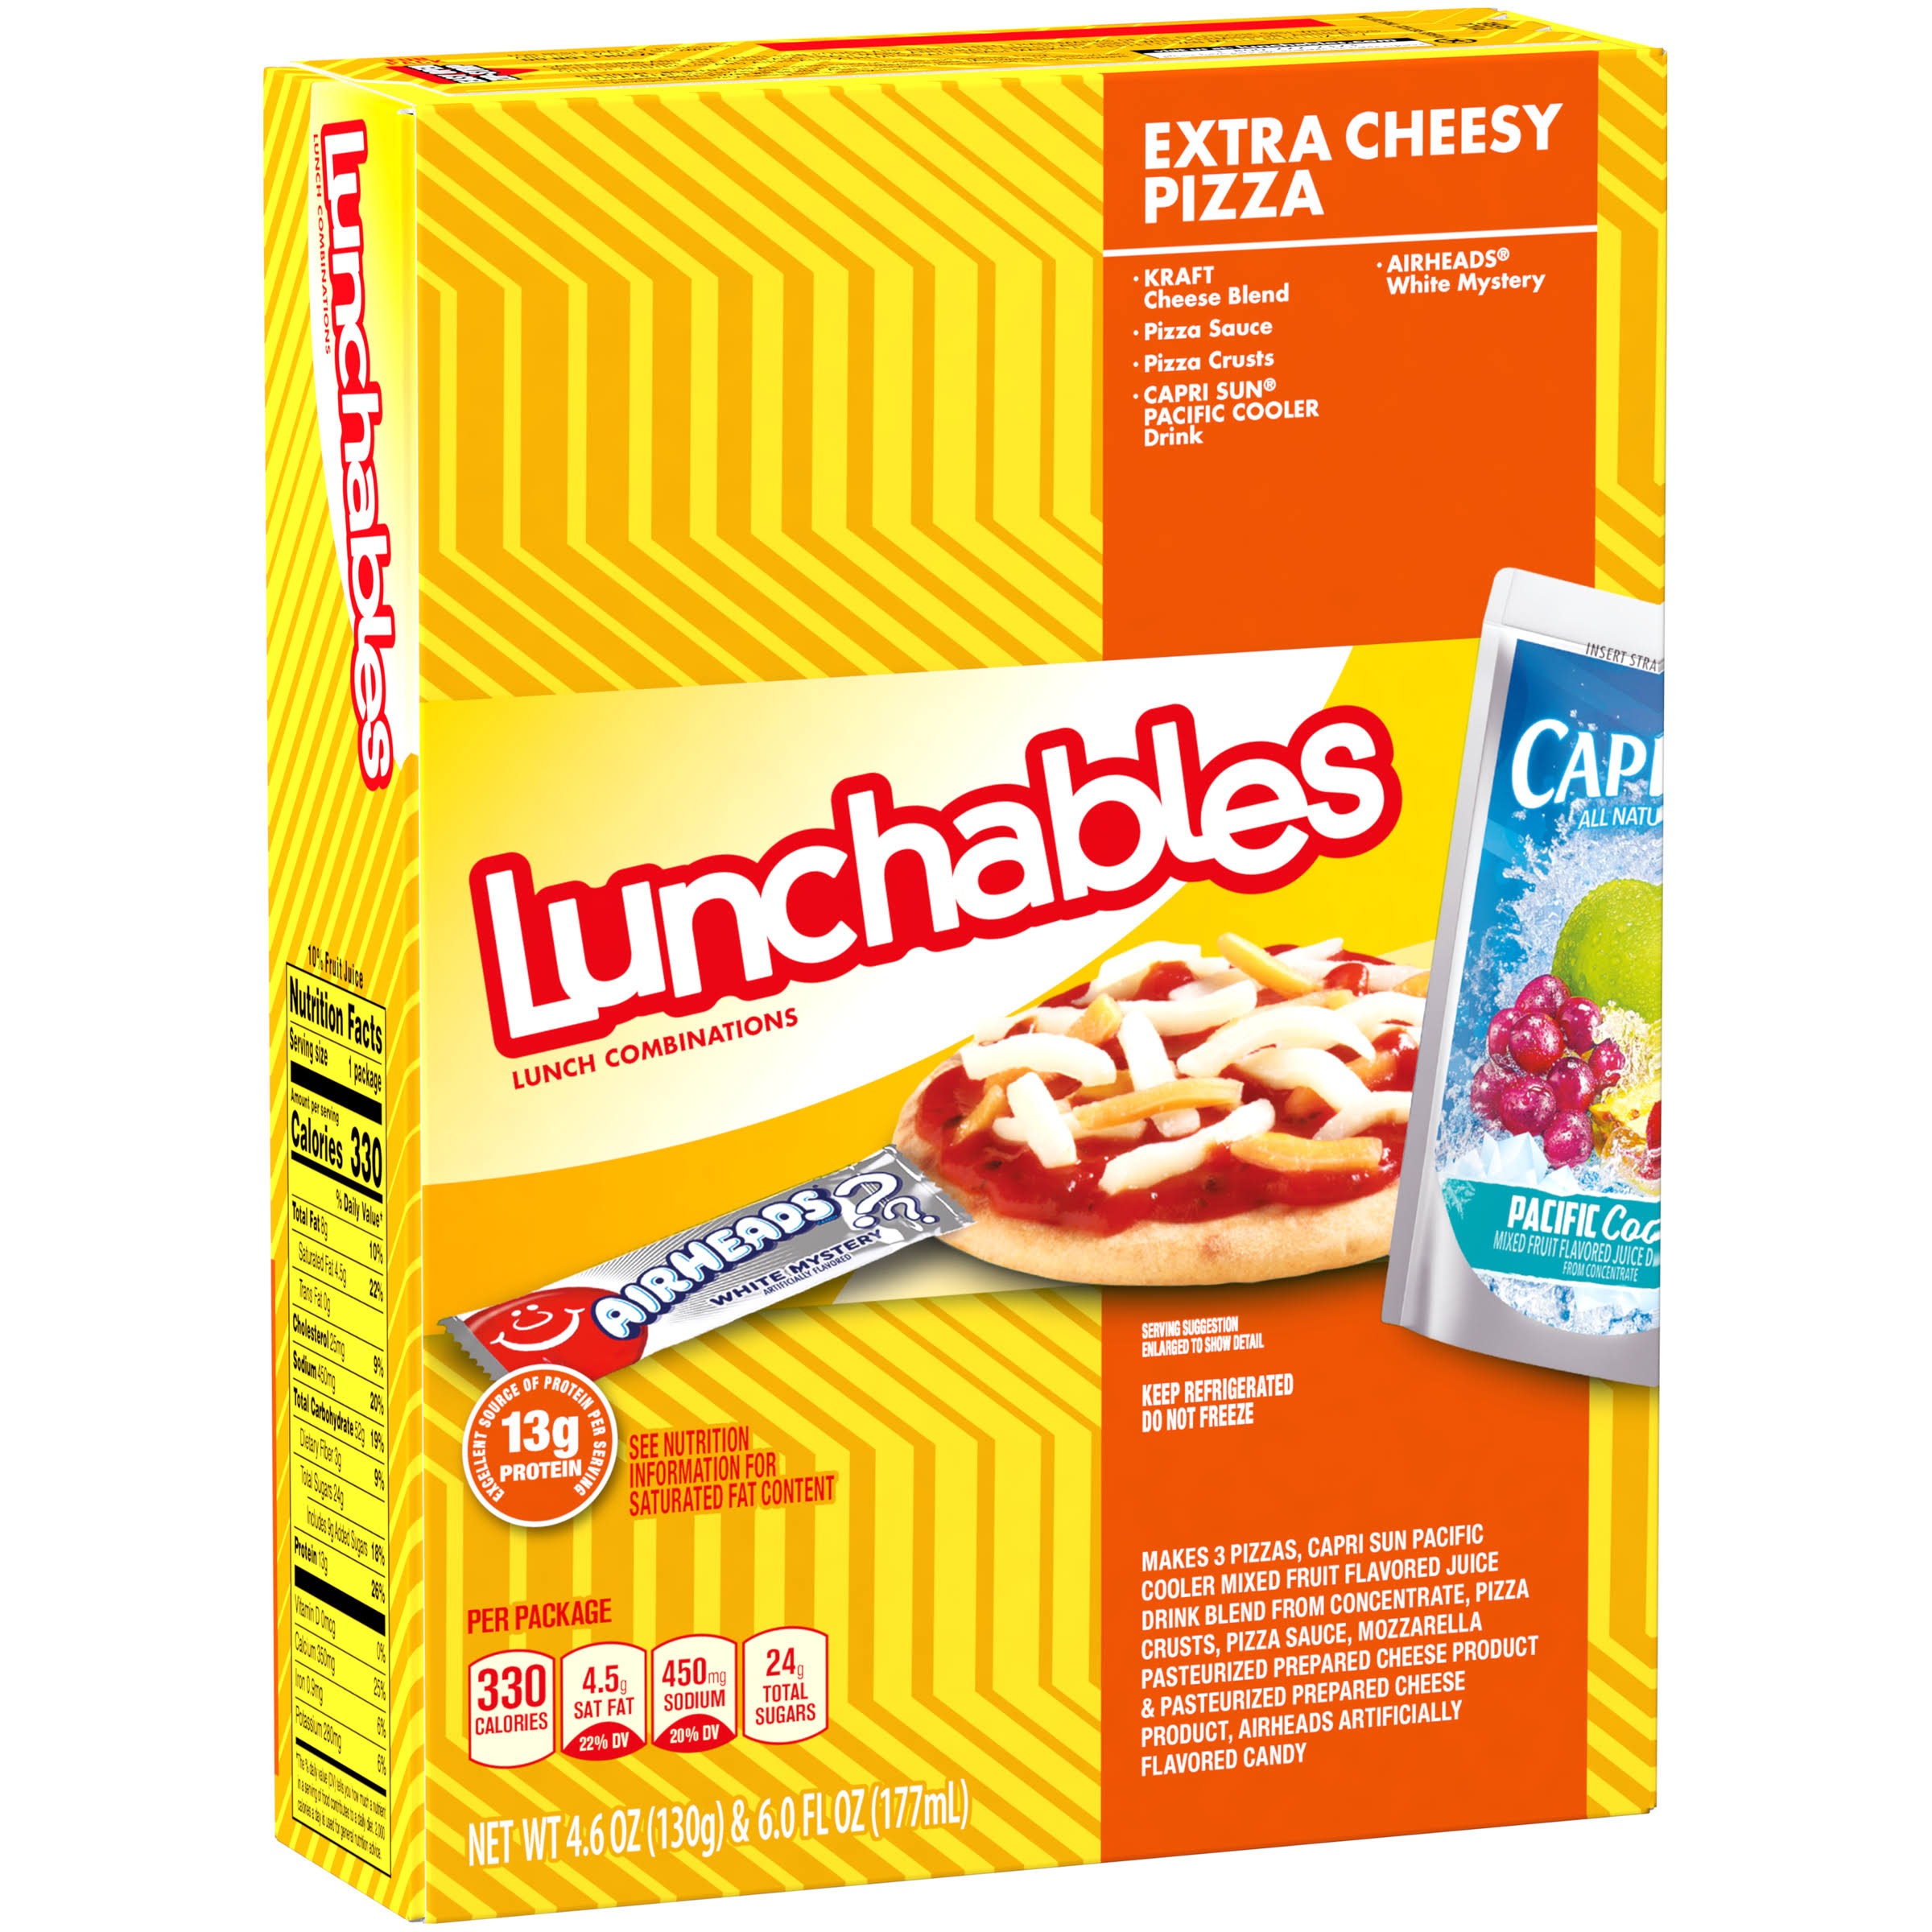 Oscar Mayer Lunchables Extra Cheesy Pizza Lunch Combinations